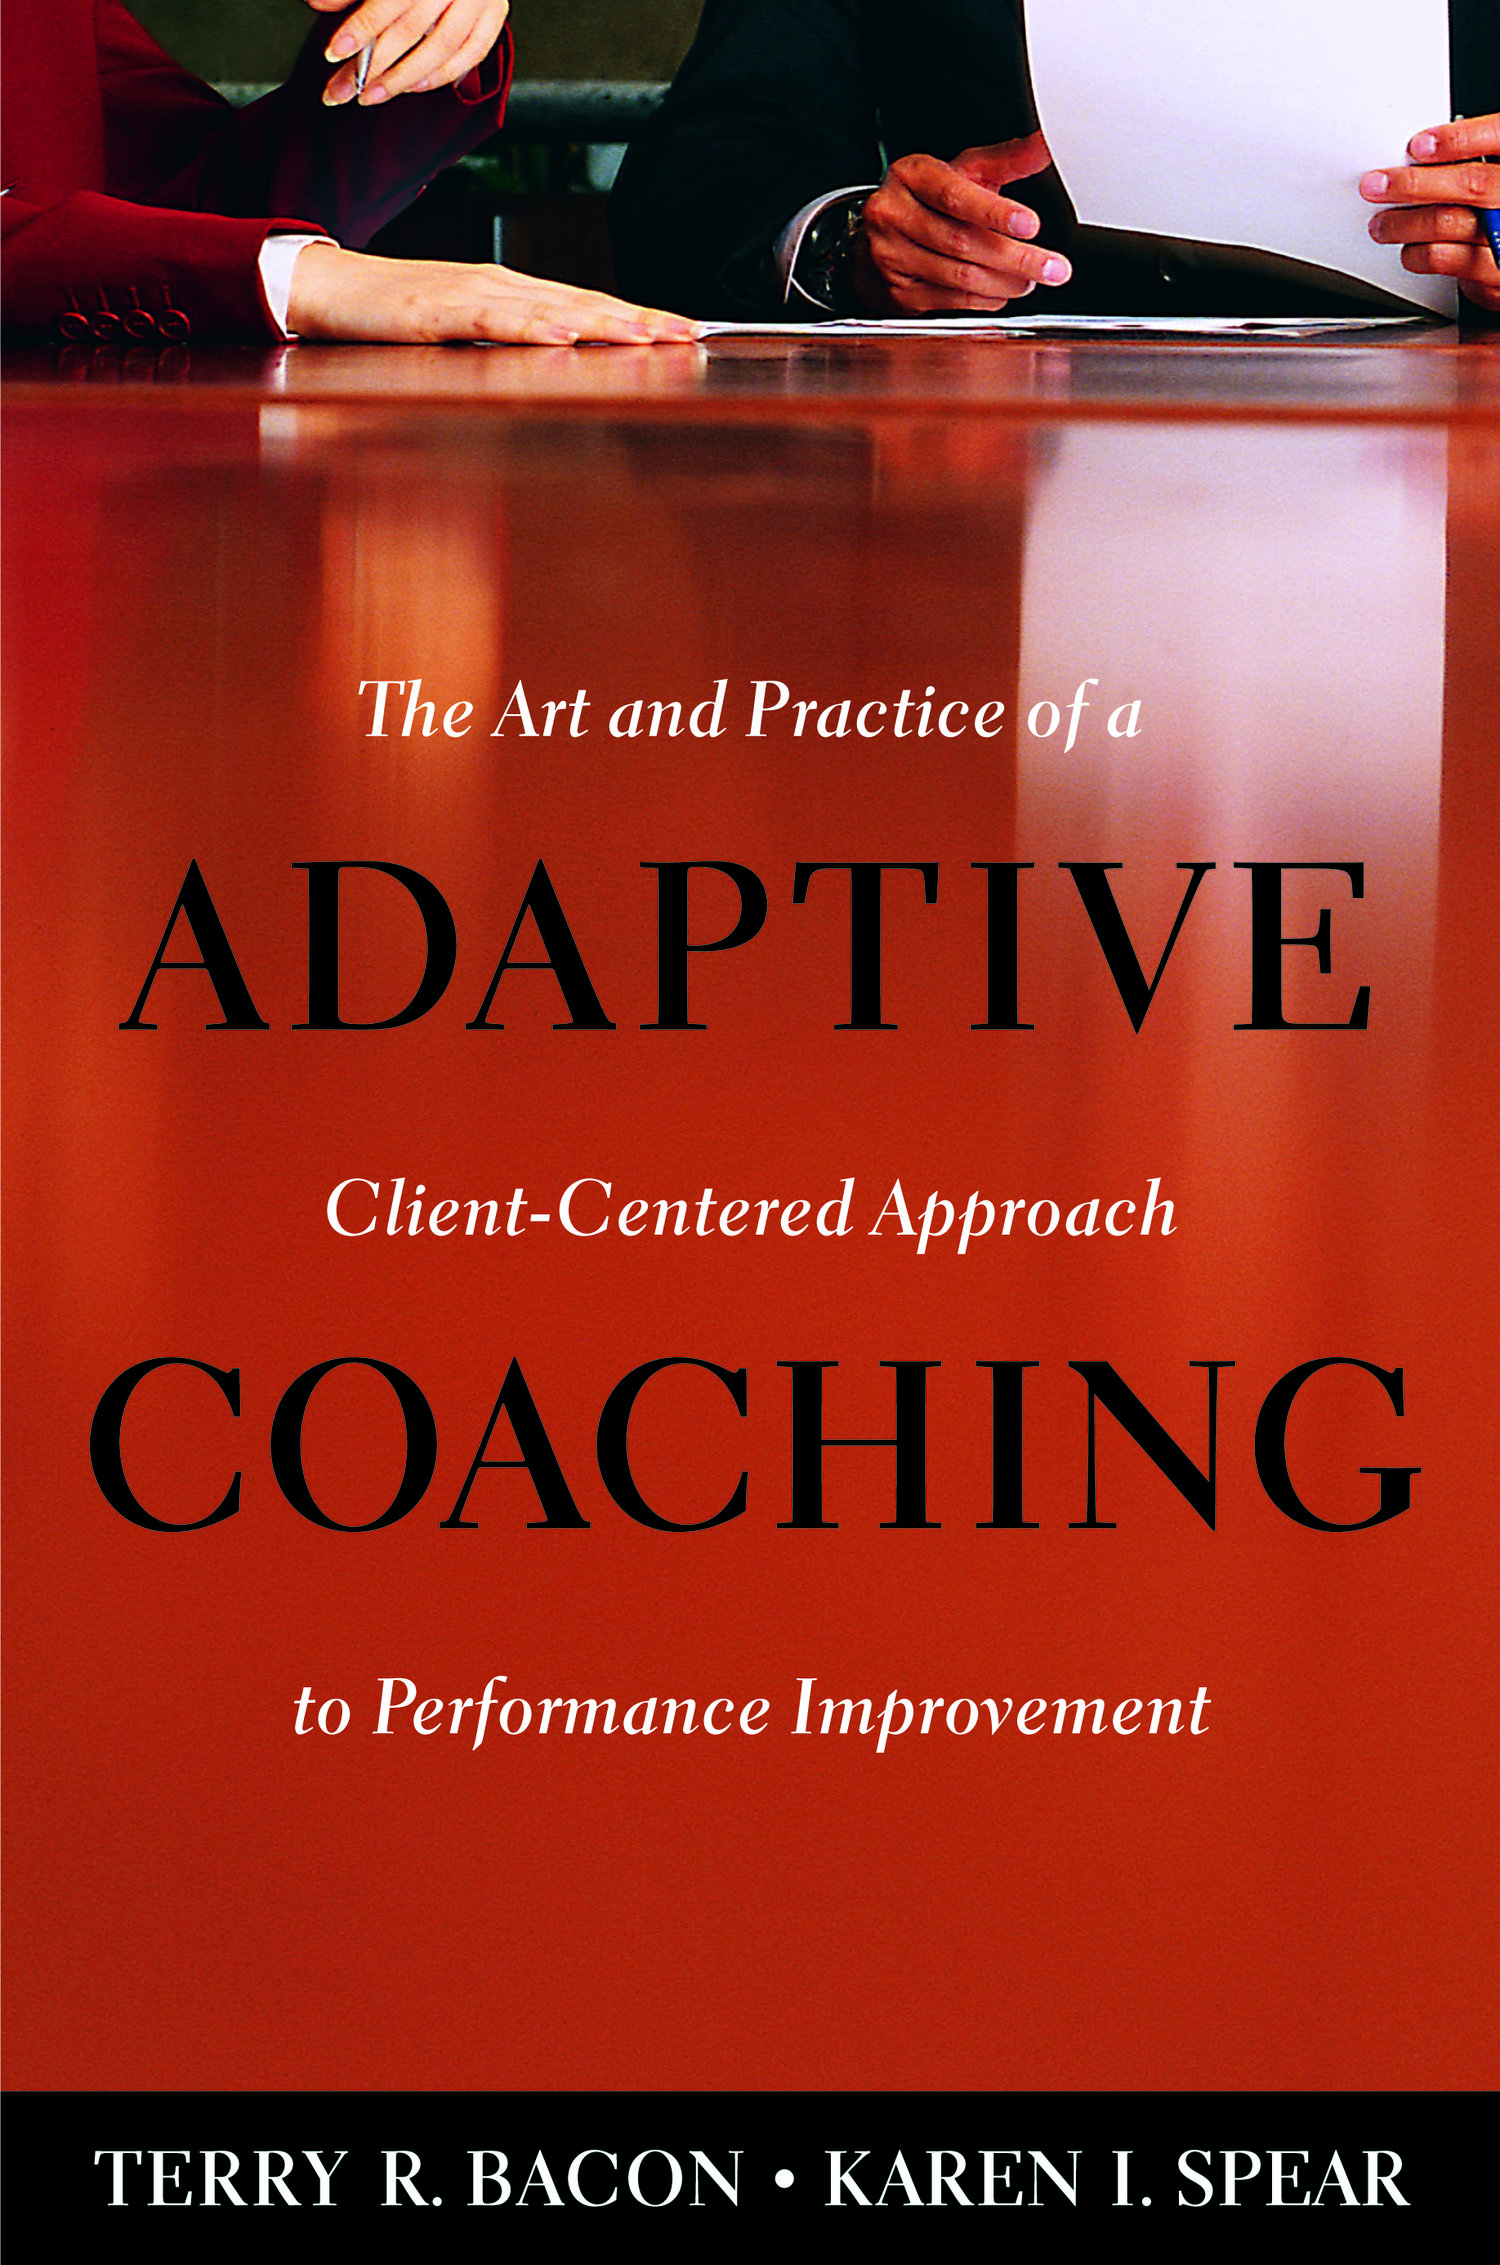 Adaptive Coaching, Terry R. Bacon & Karen I. Spear